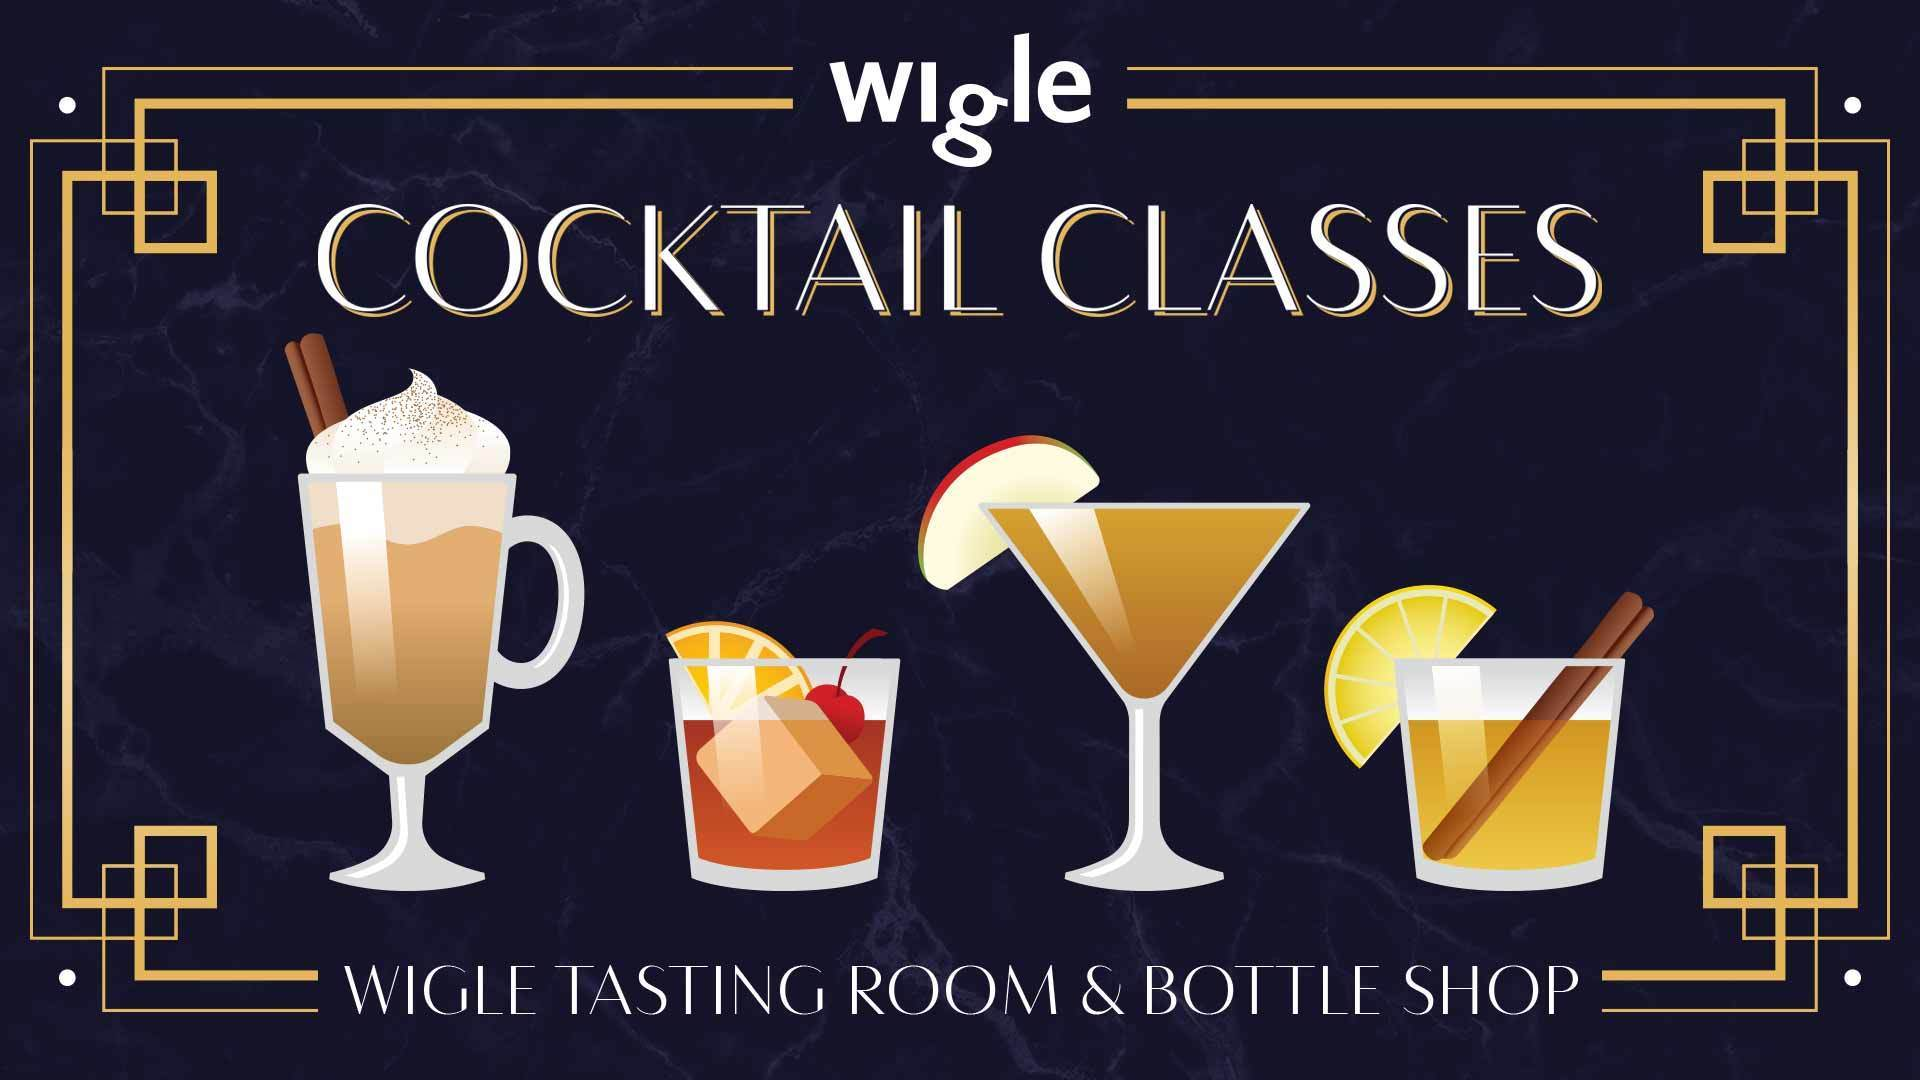 Monday, October 7th - Caramel Apple Cocktail Class - Wigle. Tasting Room and Bottle Shop Downtown